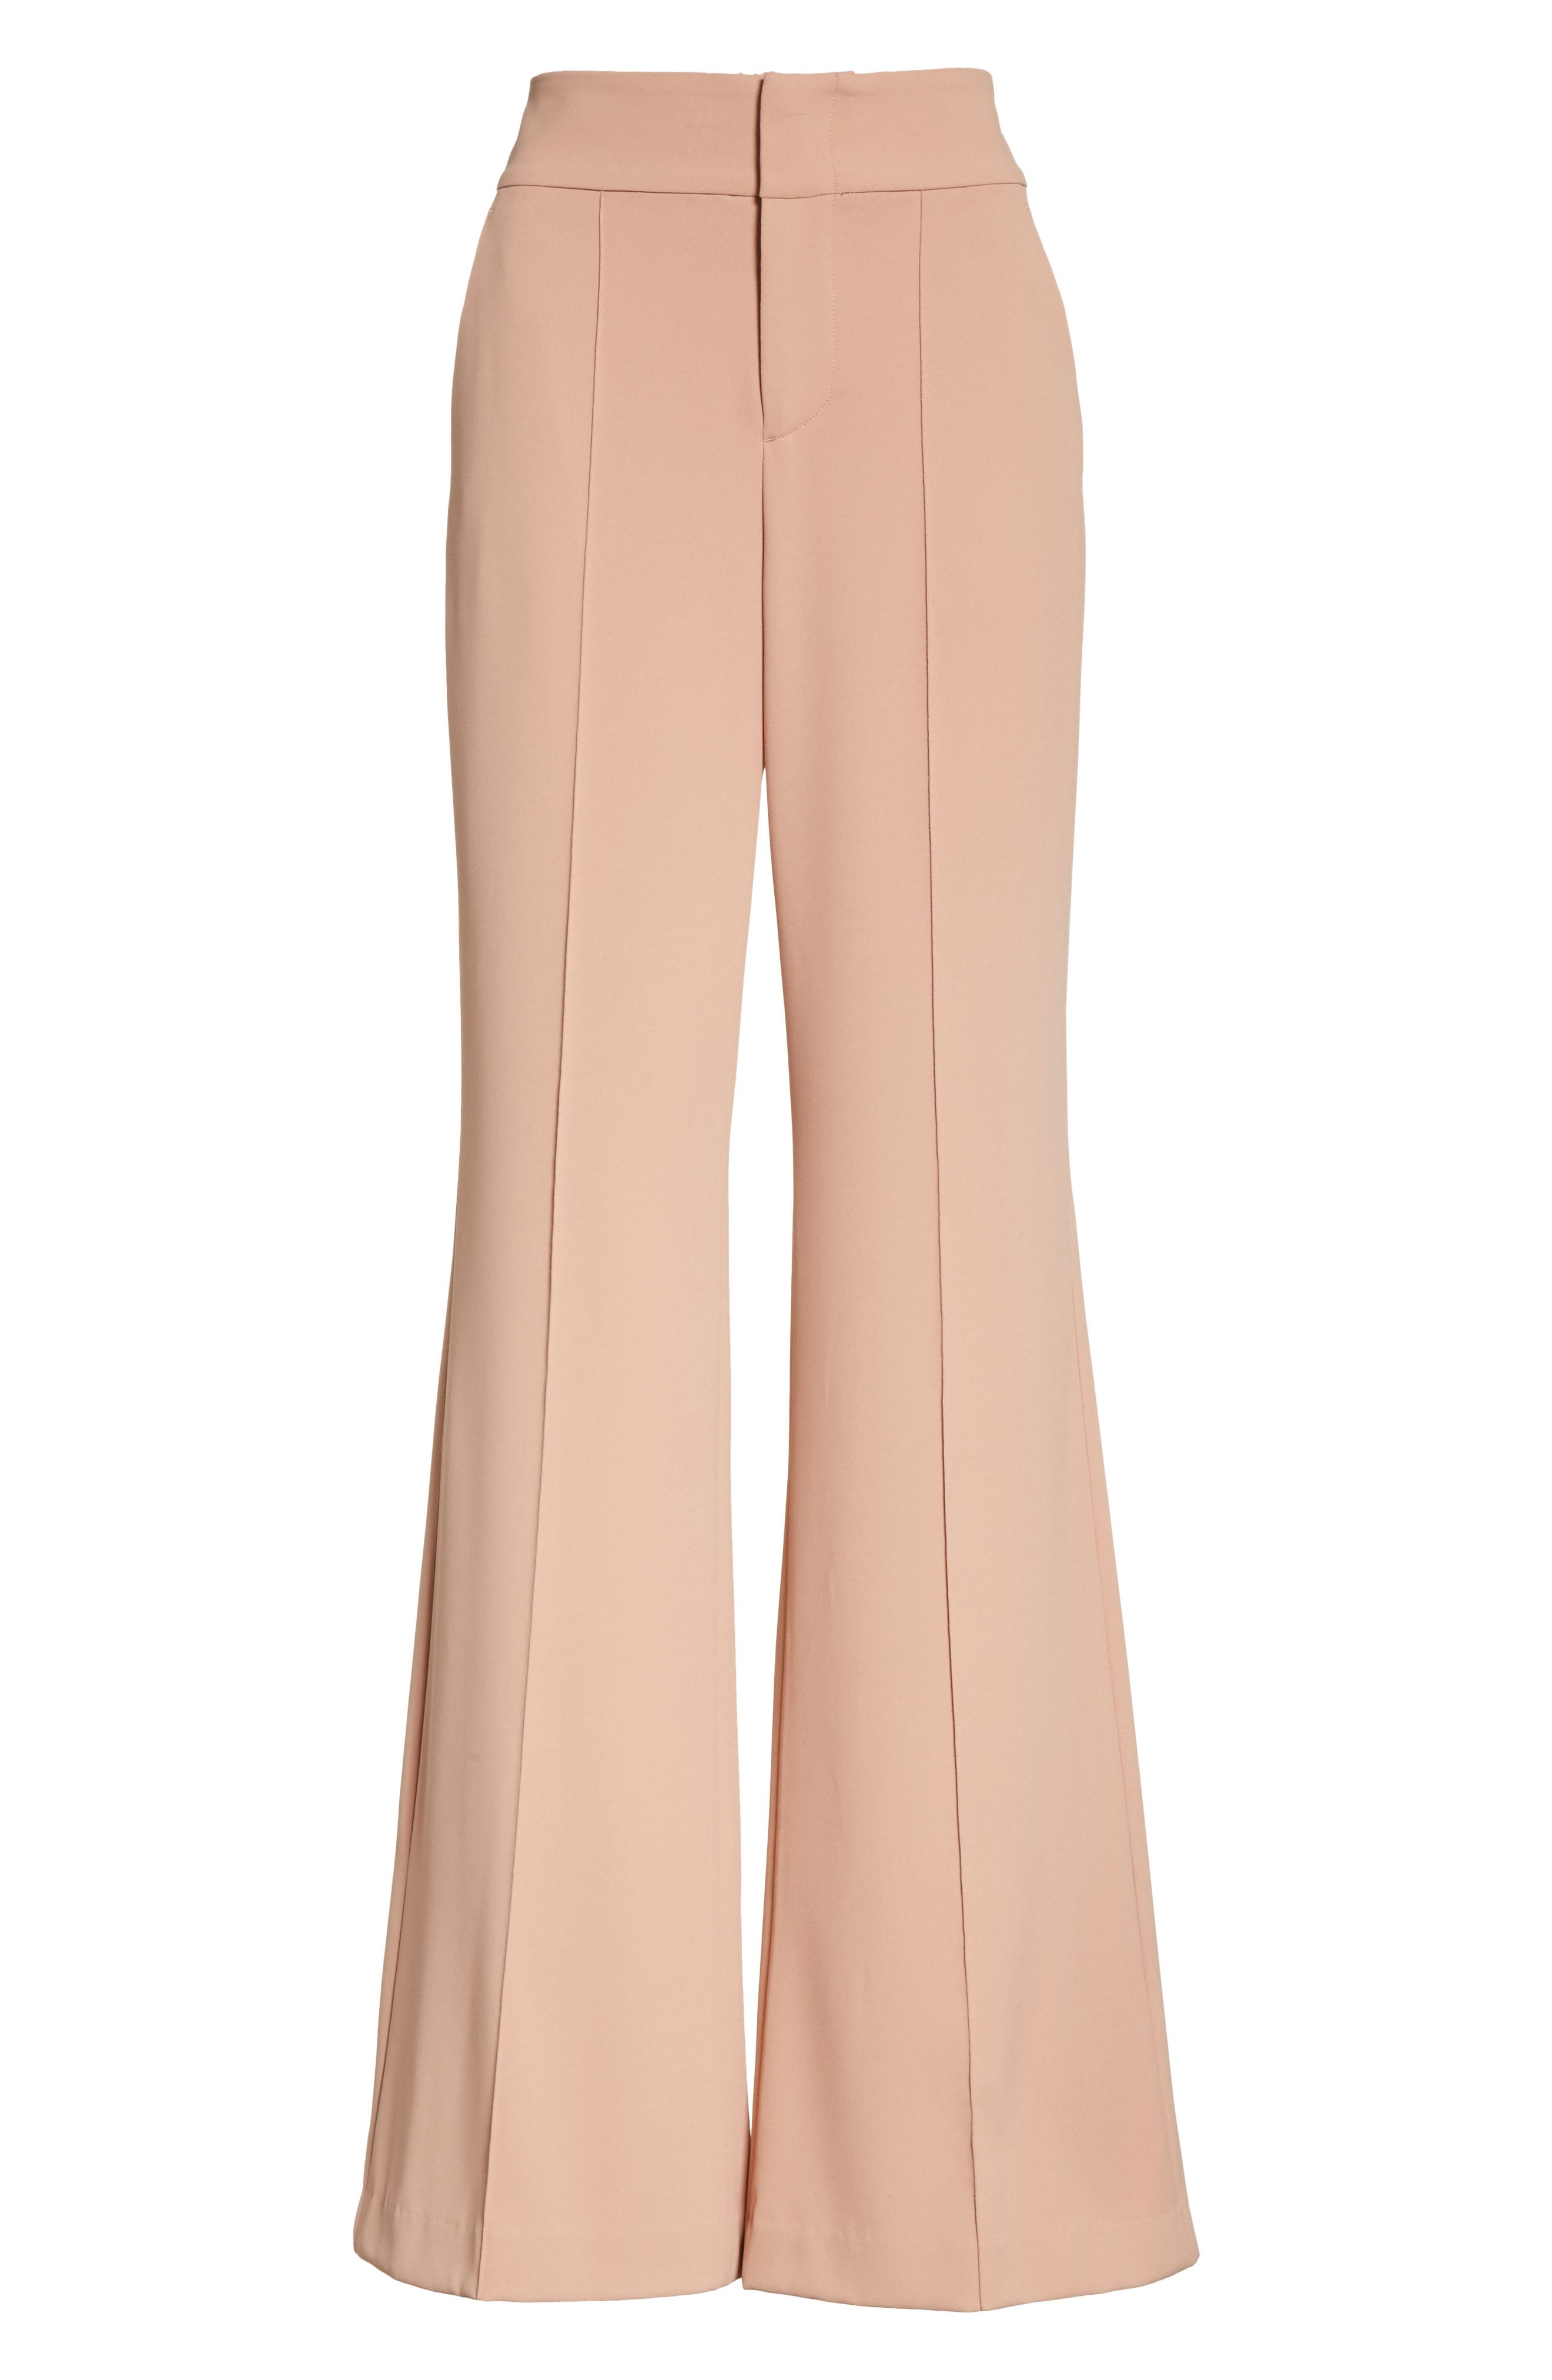 Dawn High Waist Front Pintuck Flared Pants,                             Alternate thumbnail 6, color,